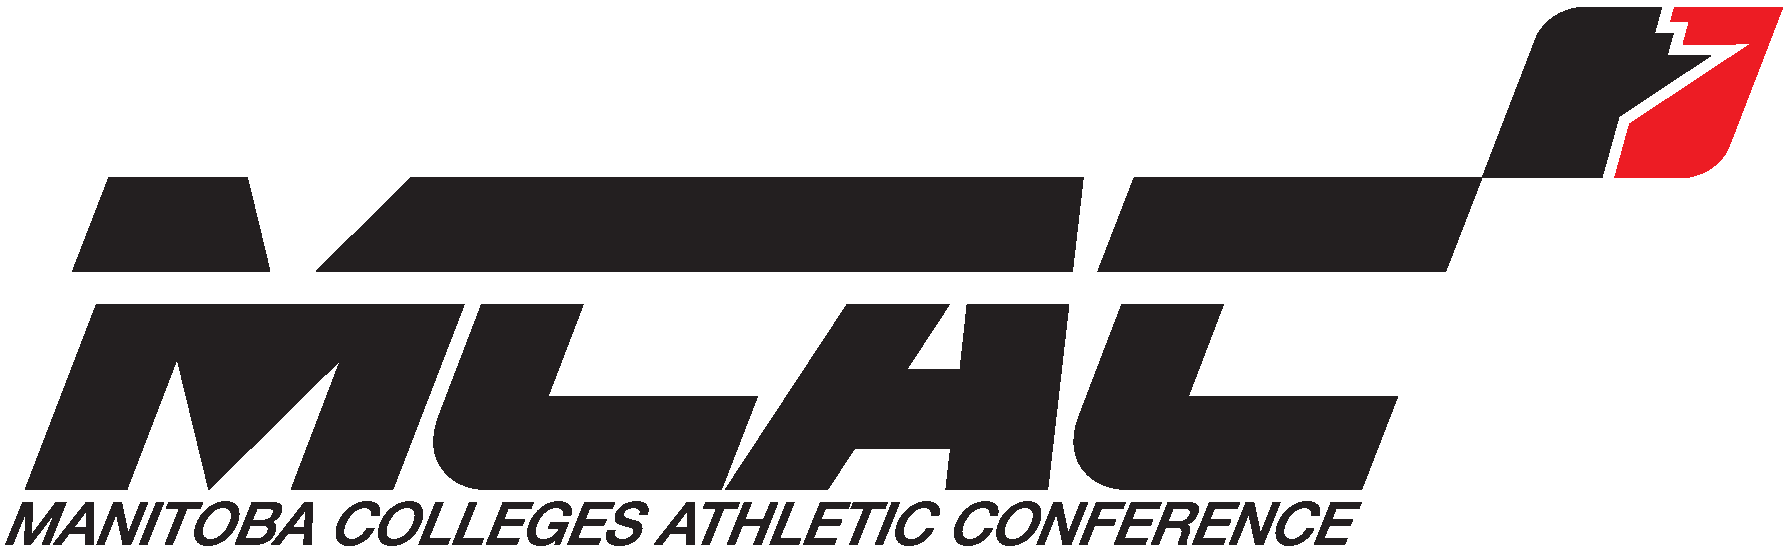 Manitoba Colleges Athletic Conference